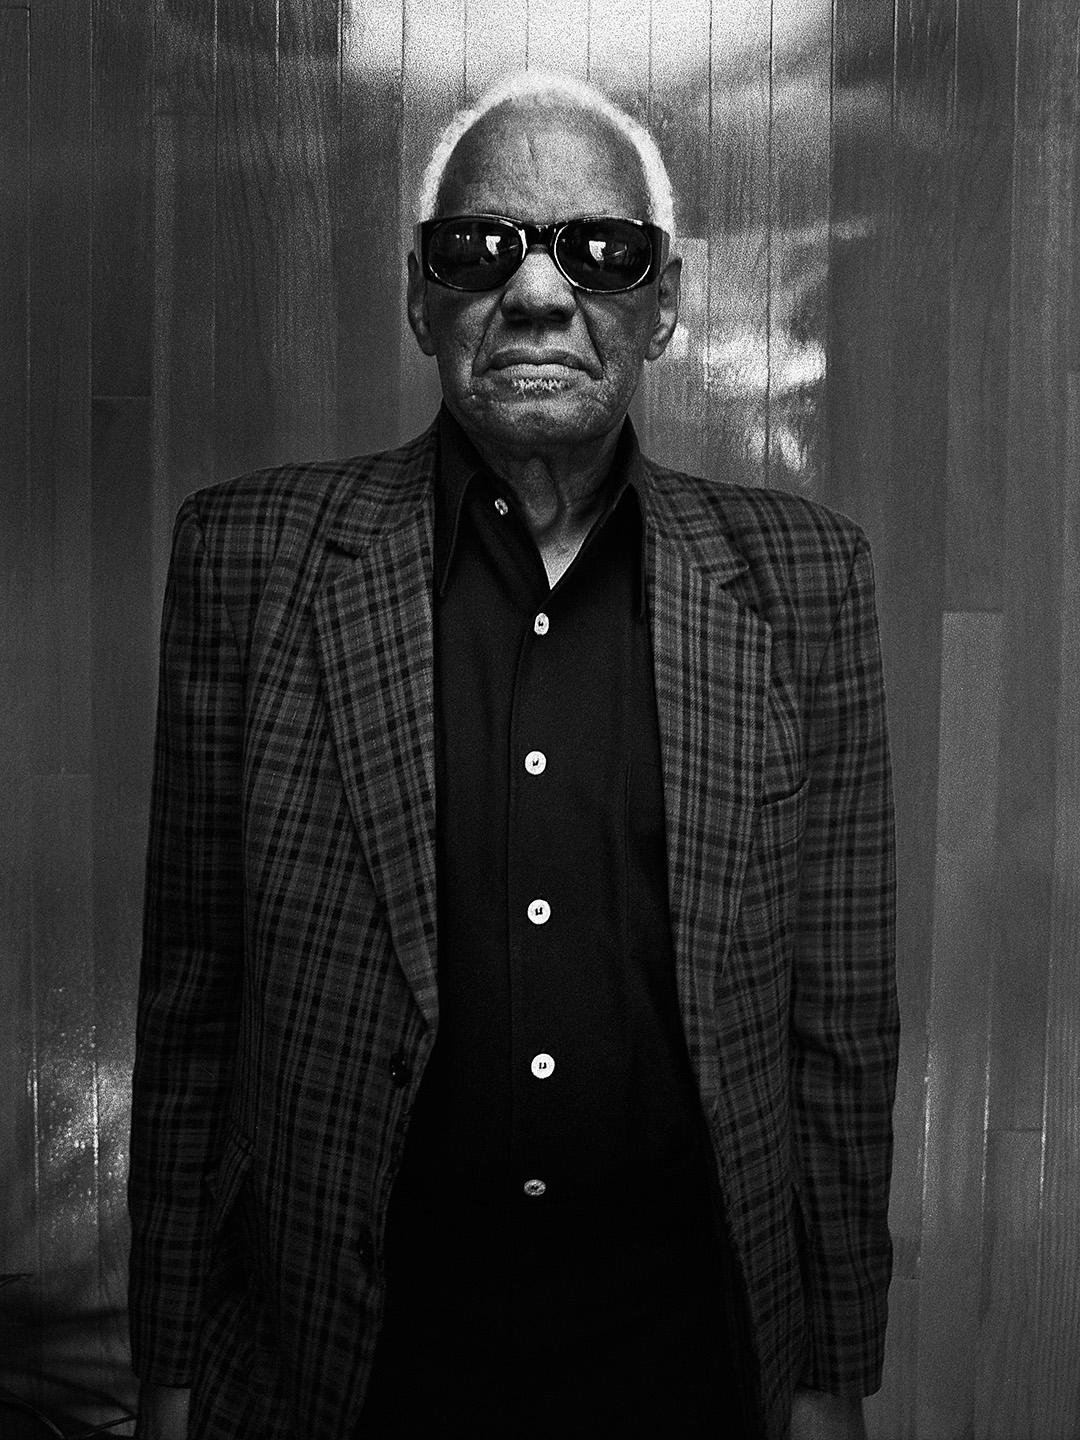 Ray Charles photographed by NYC photographer Patrik Andersson at Ray's music production studio in Los Angeles